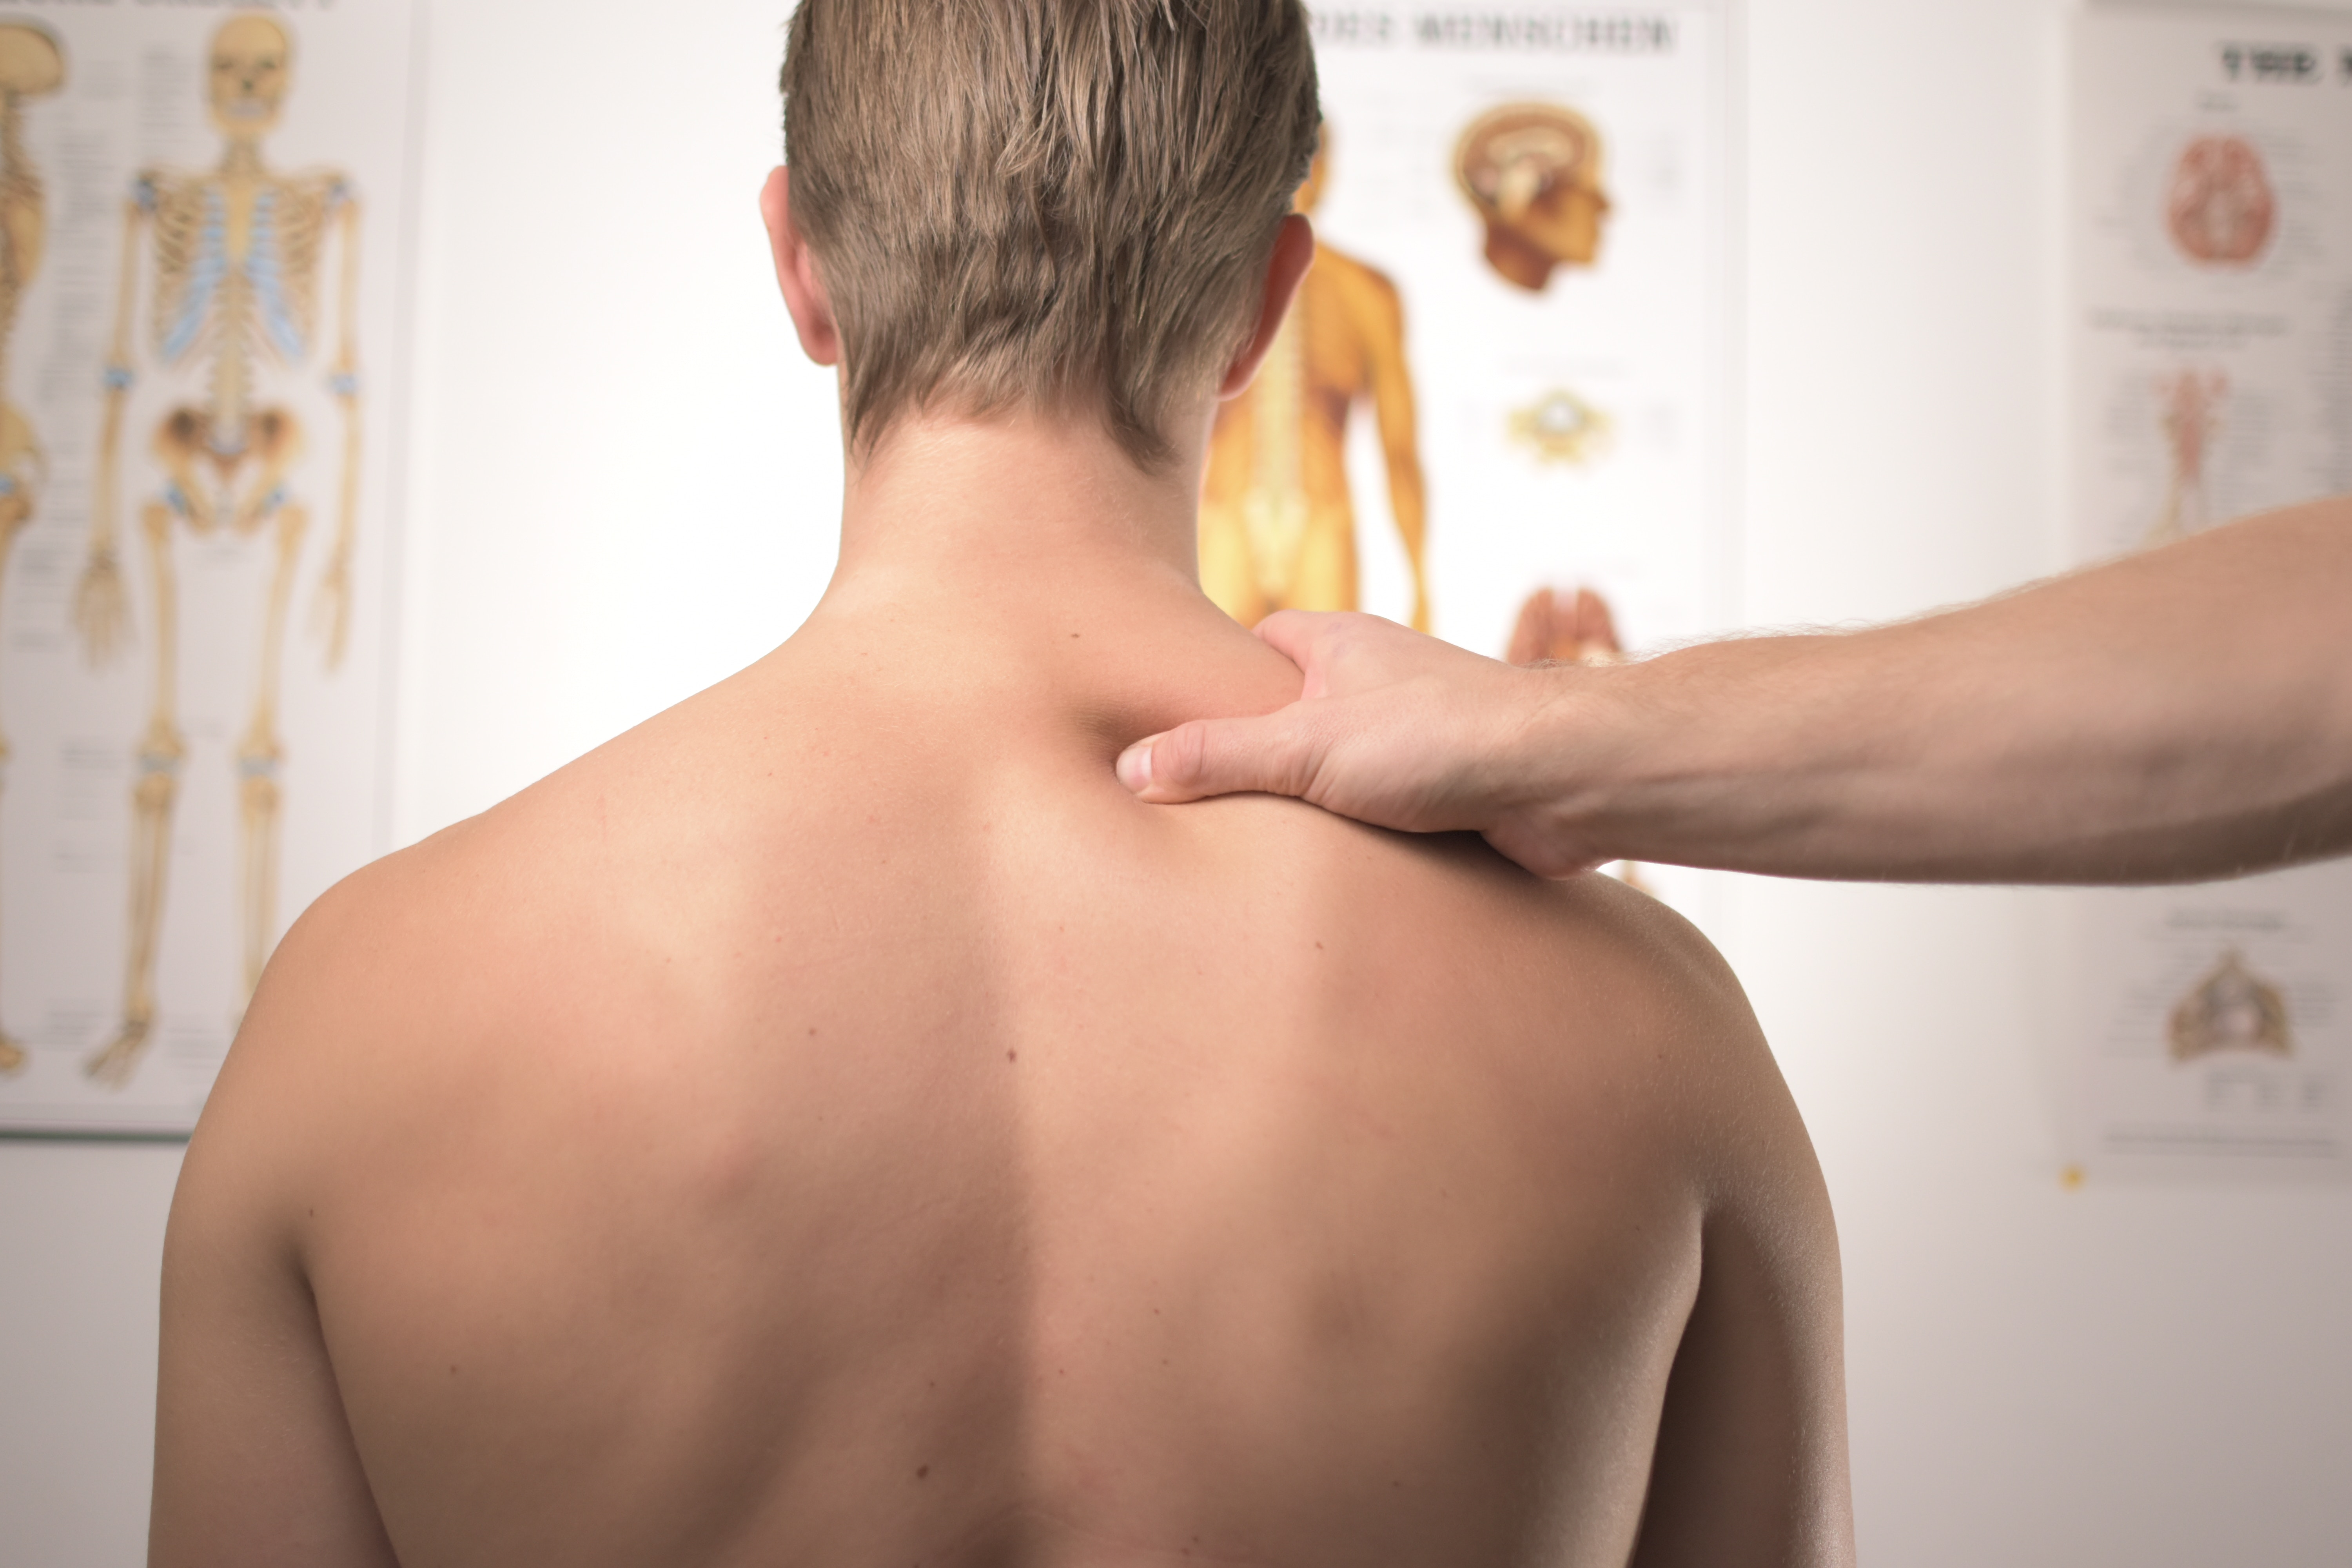 AssessmentandTreatment of your injury